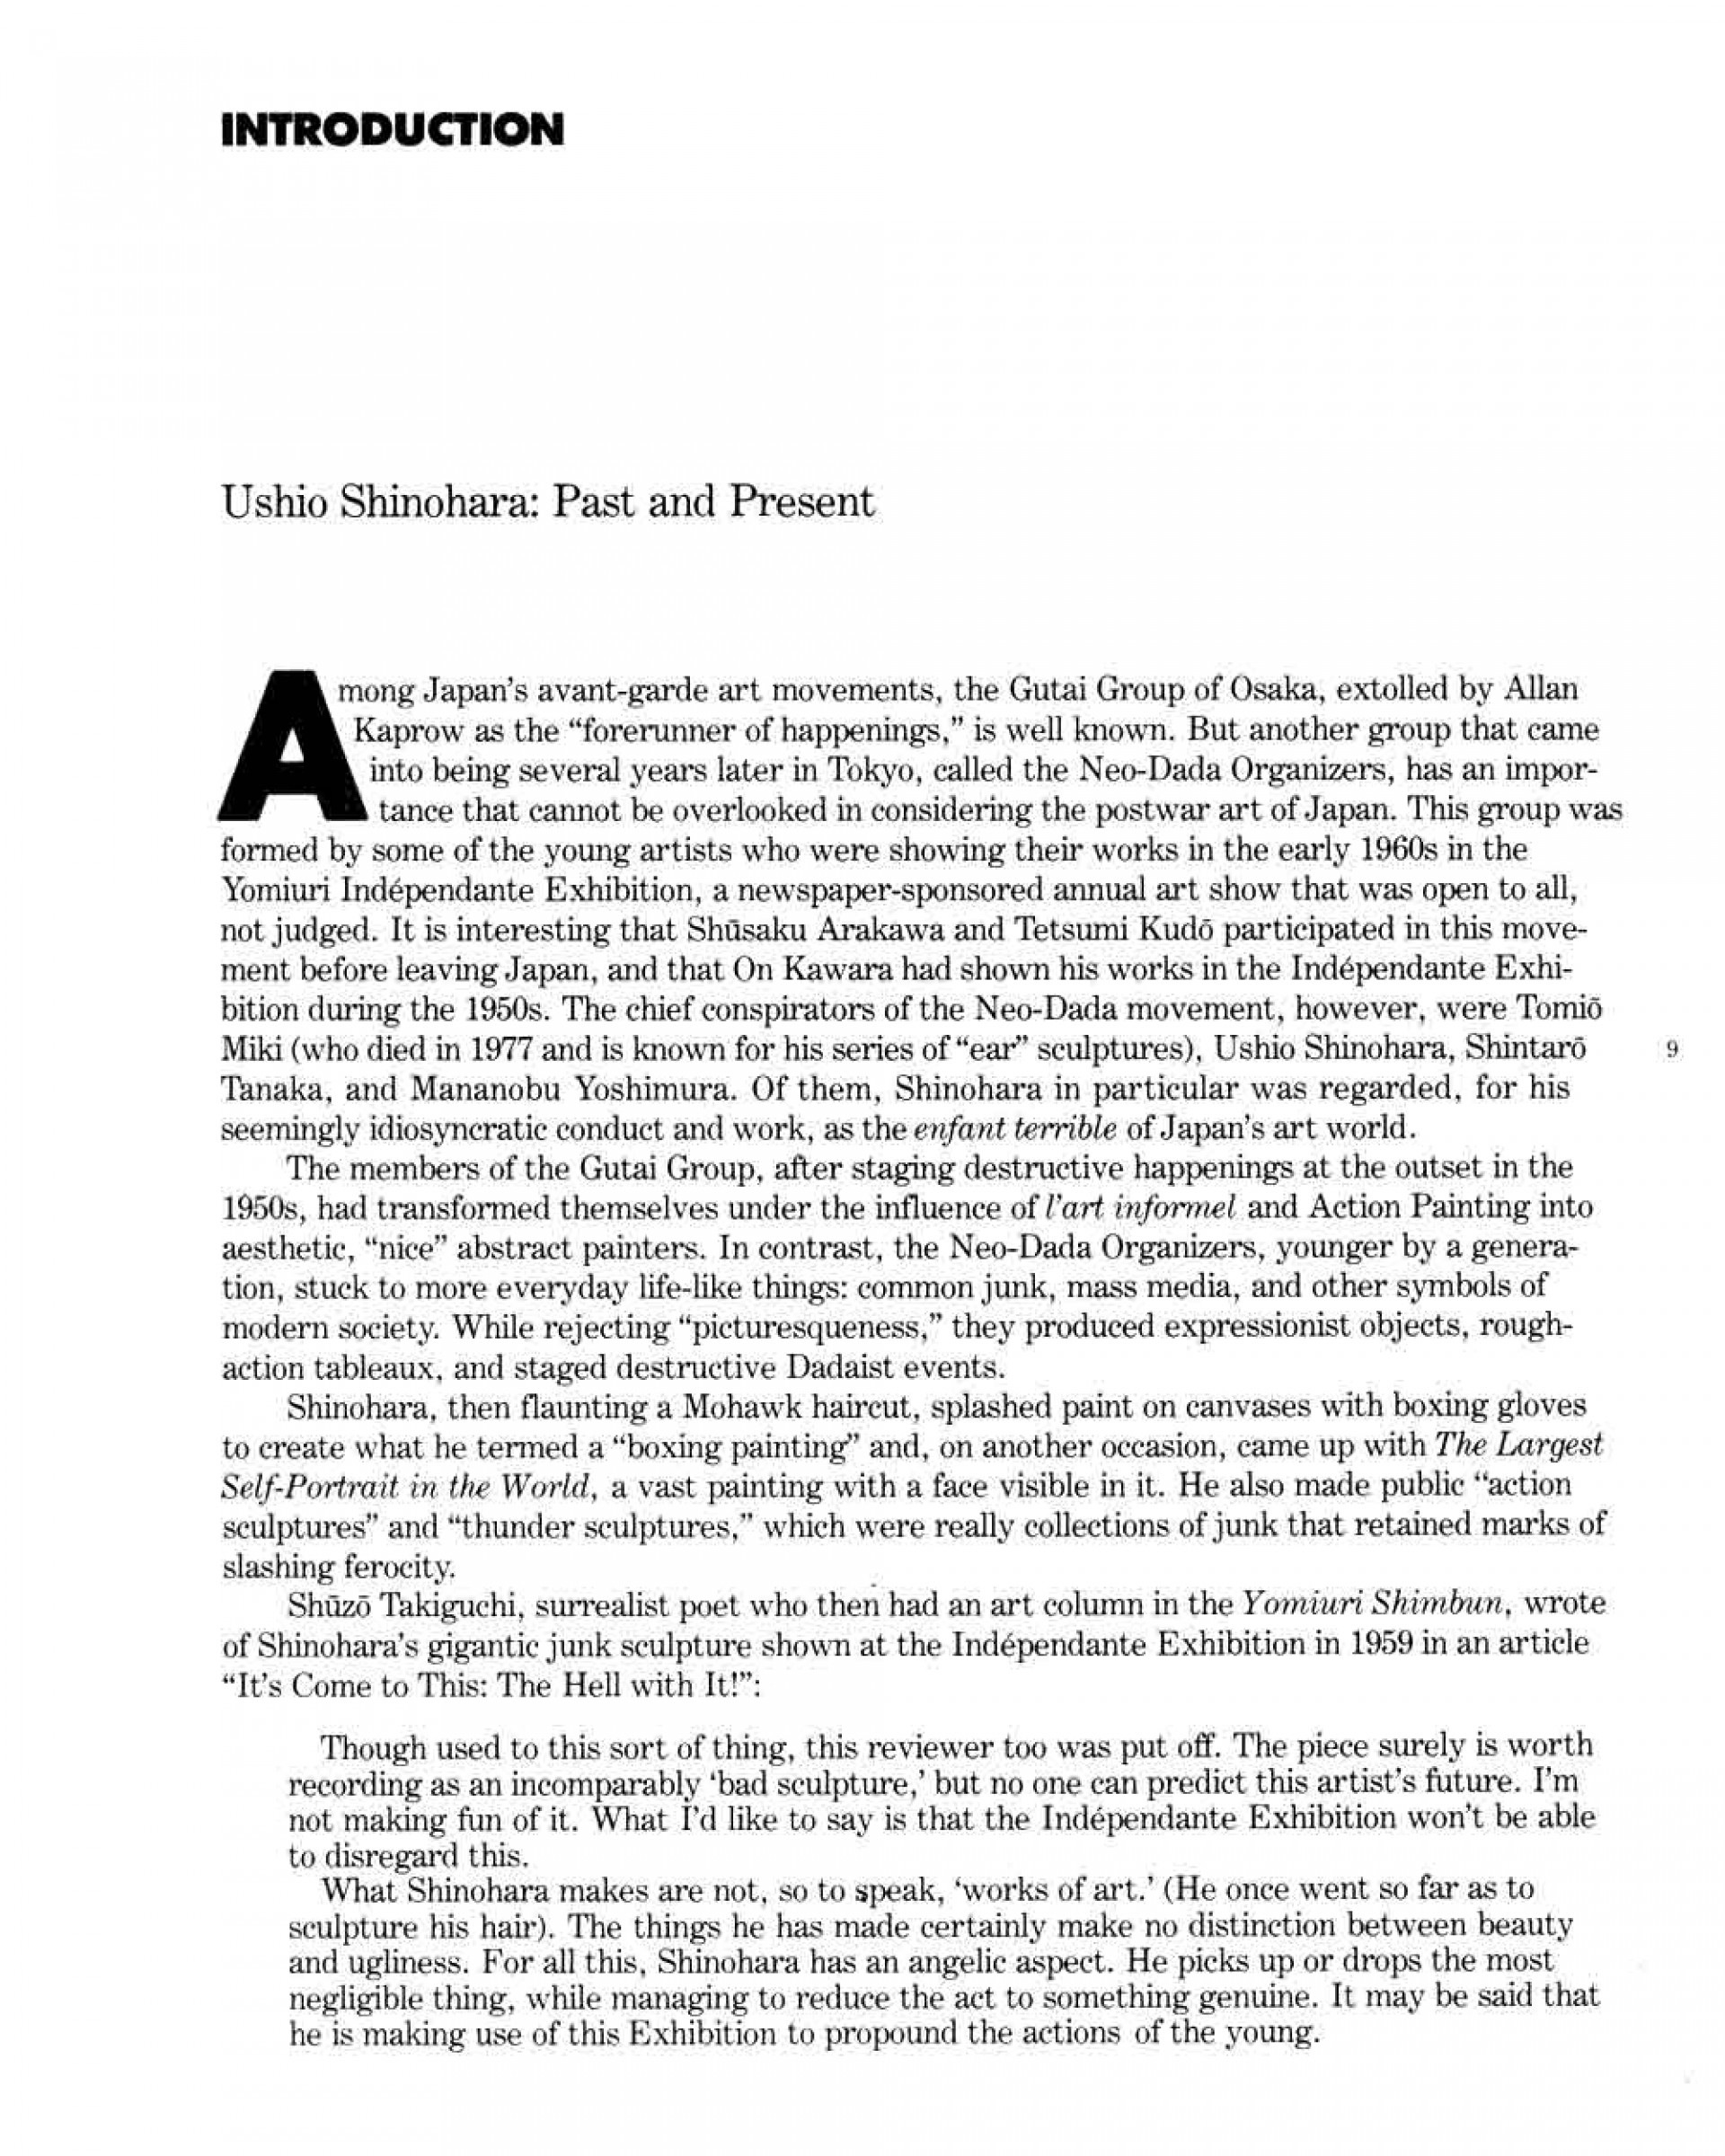 001 Ushio Shinohara Past And Present Essay Pg 1 Citation Dreaded Mla In Text Generator Proper Format 1920